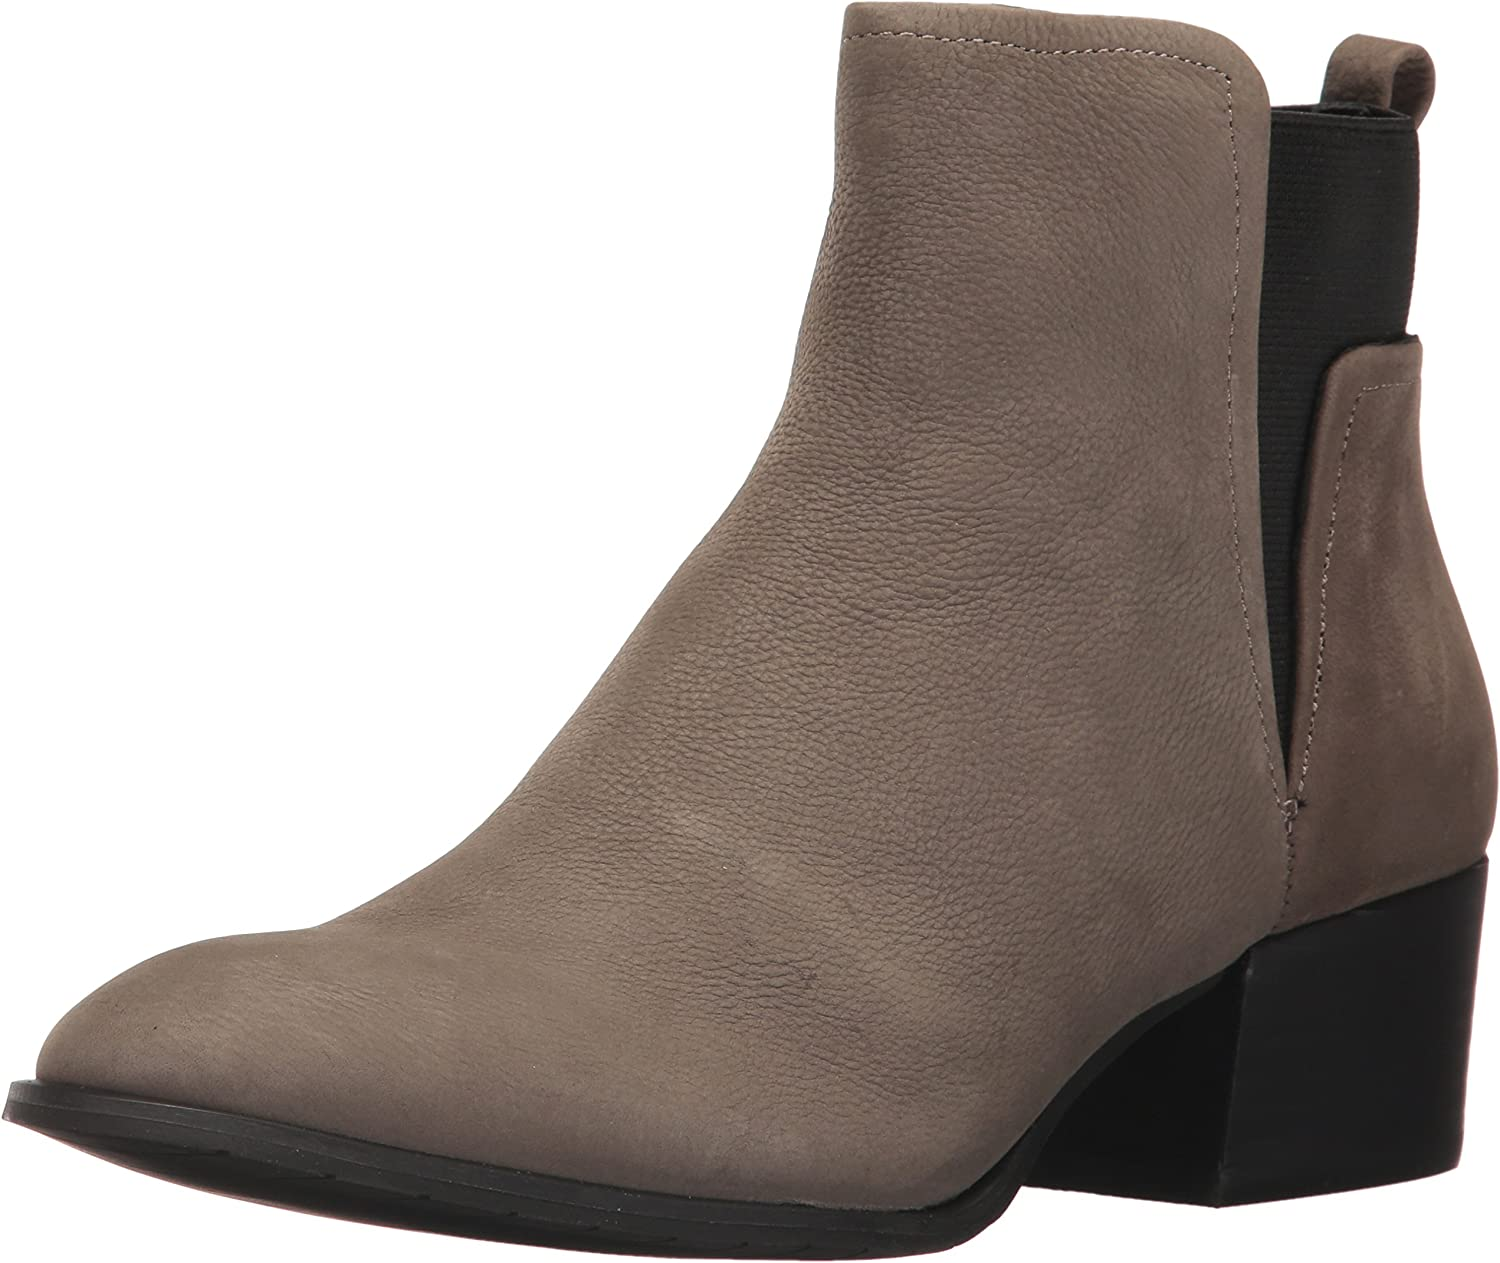 Kenneth Cole New York Womens Artie Pull on Ankle Bootie Low Heel Nubuck Ankle Bootie